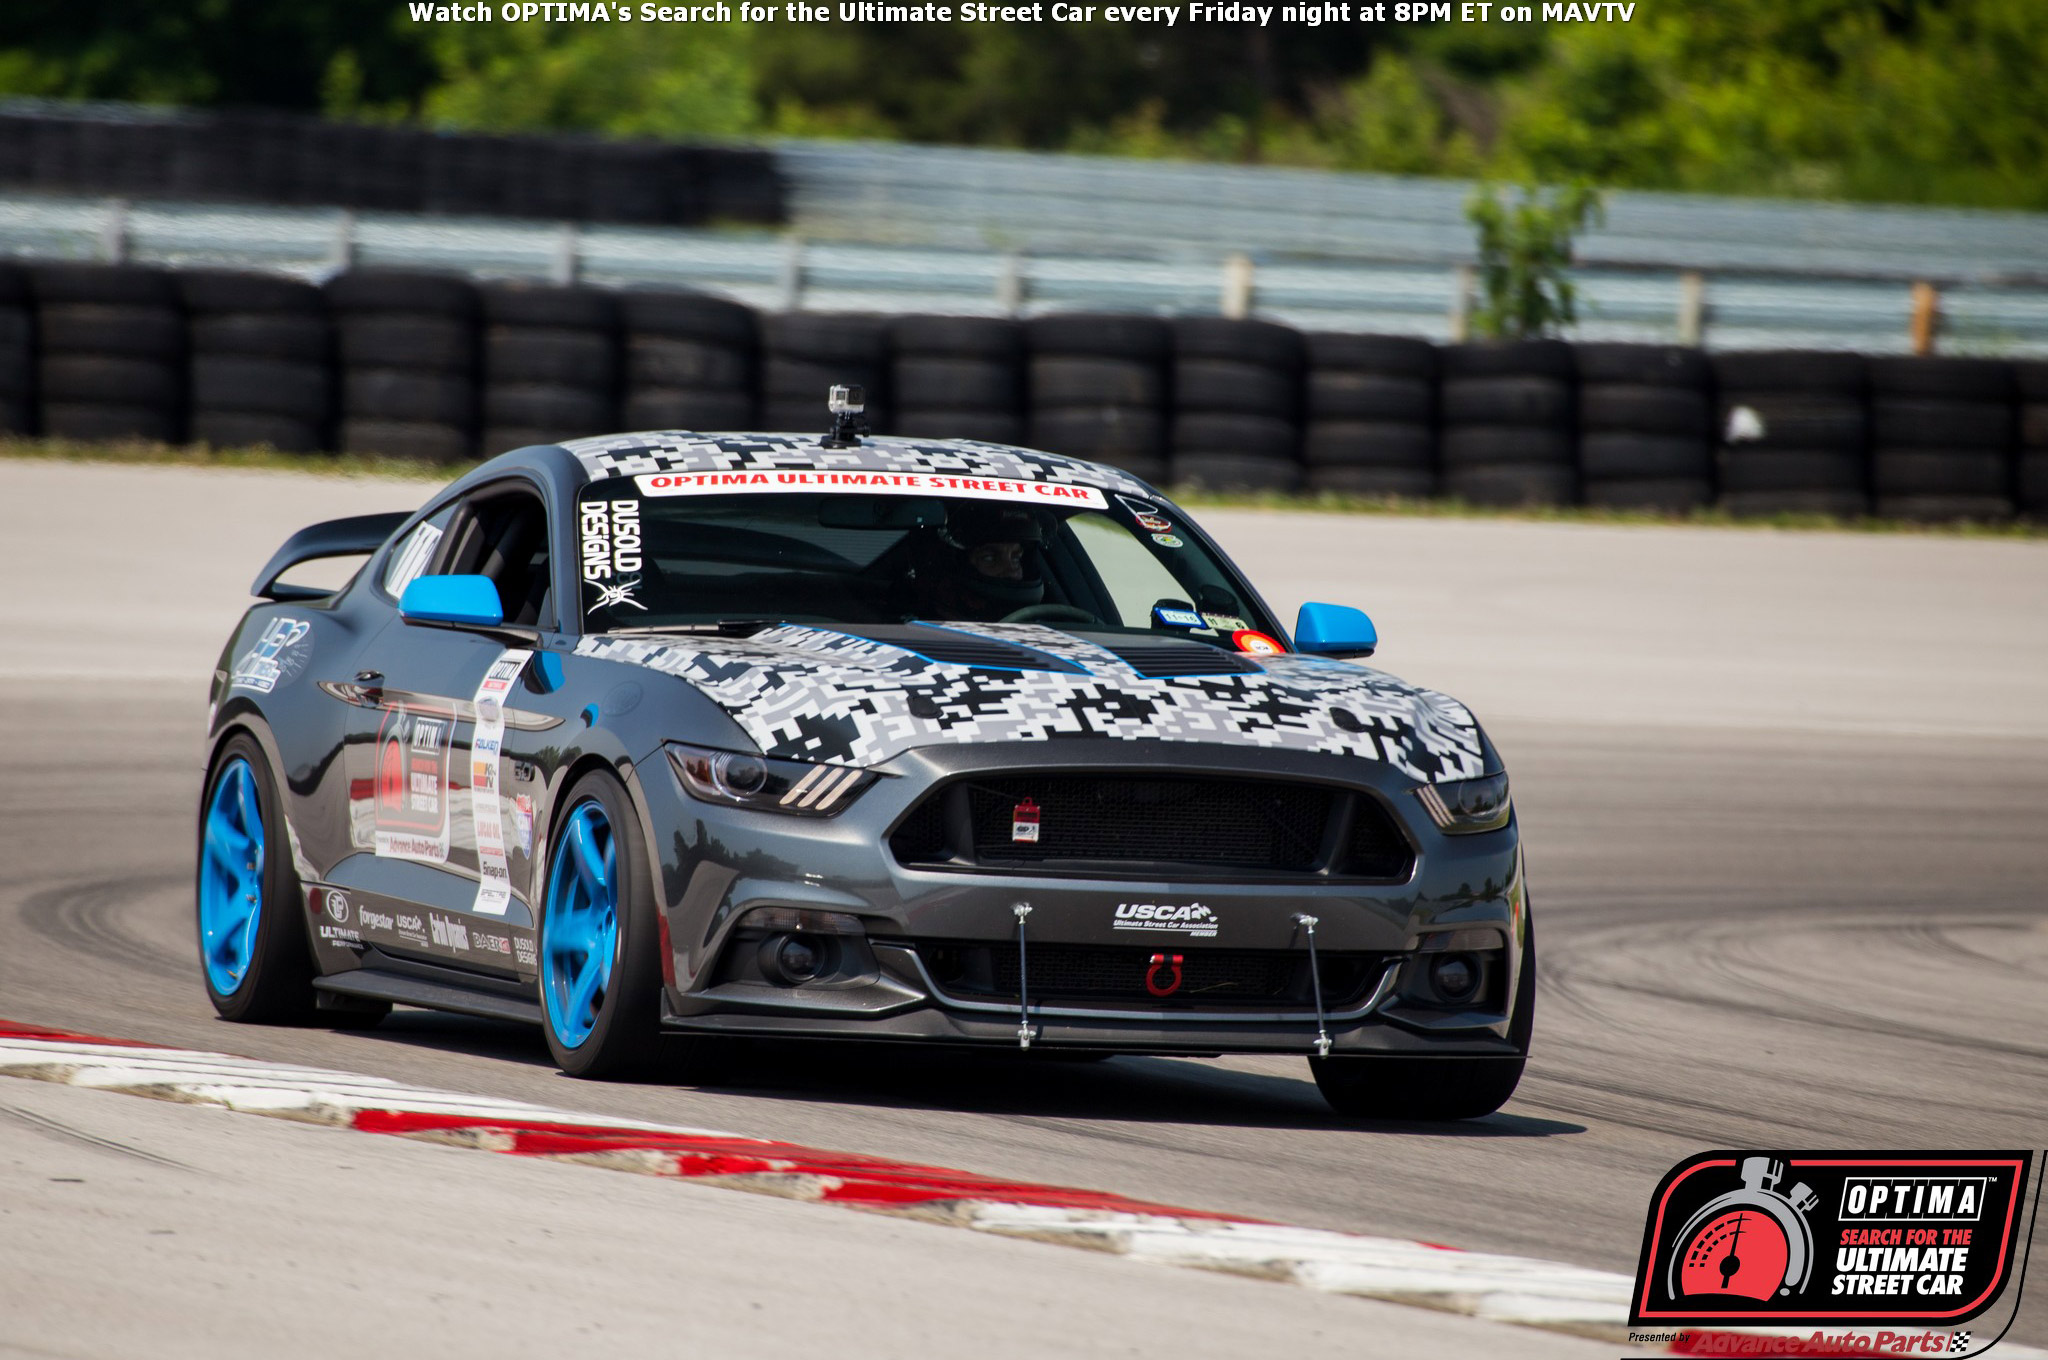 Aaron Sockwell brought his 2015 Mustang GT from the DuSold Designs stables up for a run at NCM Motorsports Park and placed third on the Detroit Speed Autocross and fifth on the Falken Road Course Time Trial in the GT class.